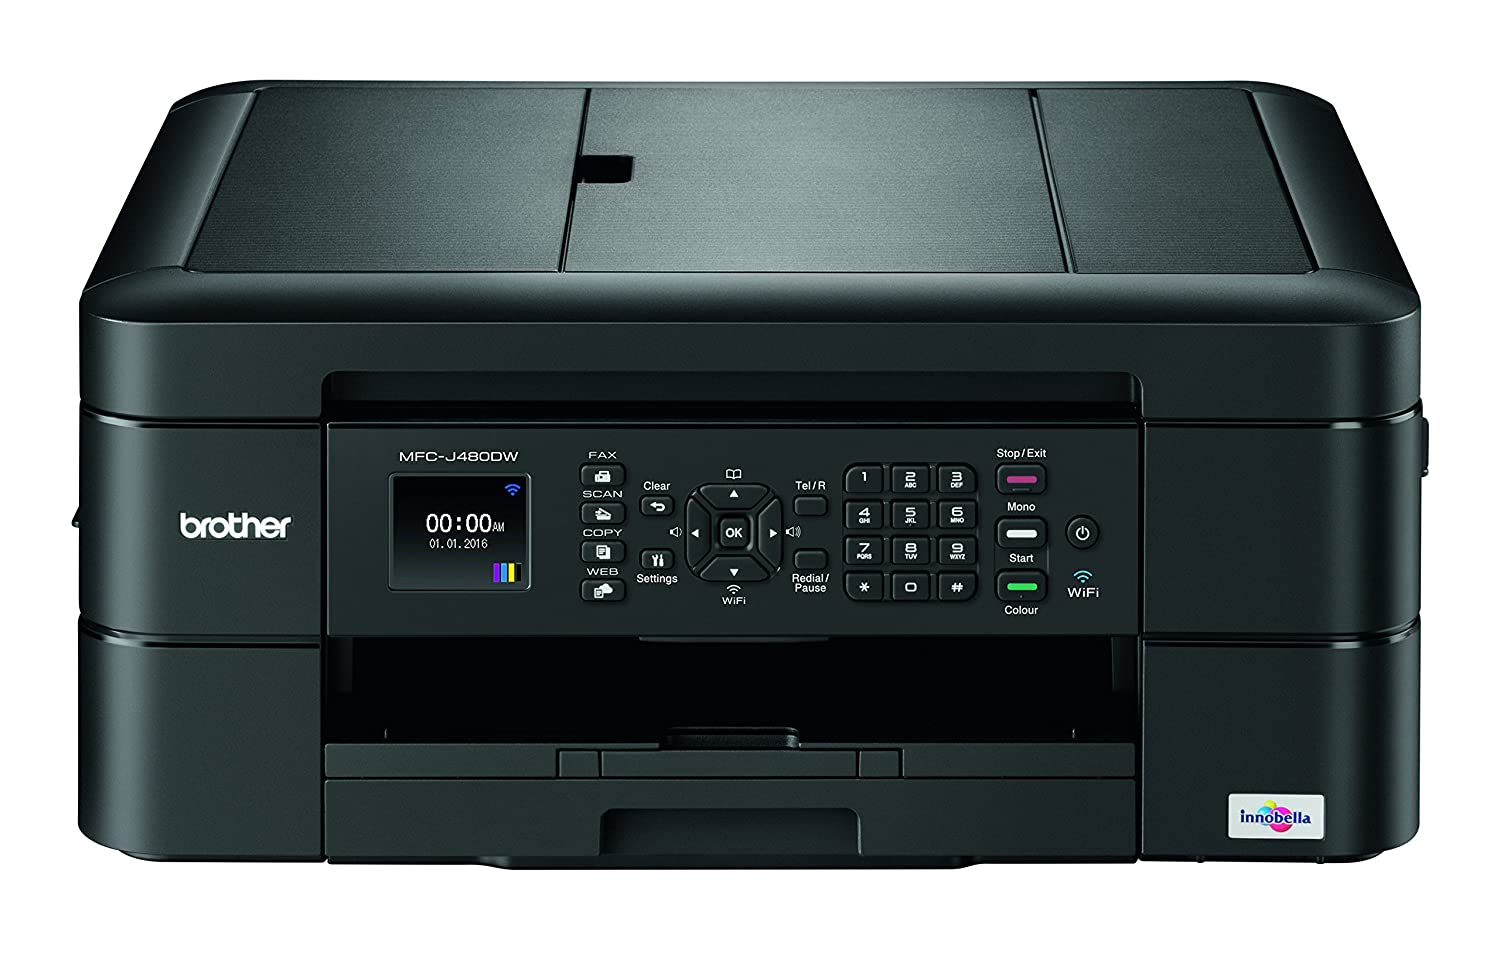 Brother MFC-J480dw Wireless Inkjet Color All-in-One Printer with Auto Document Feeder Dash Replenishment Enabled 1.8'